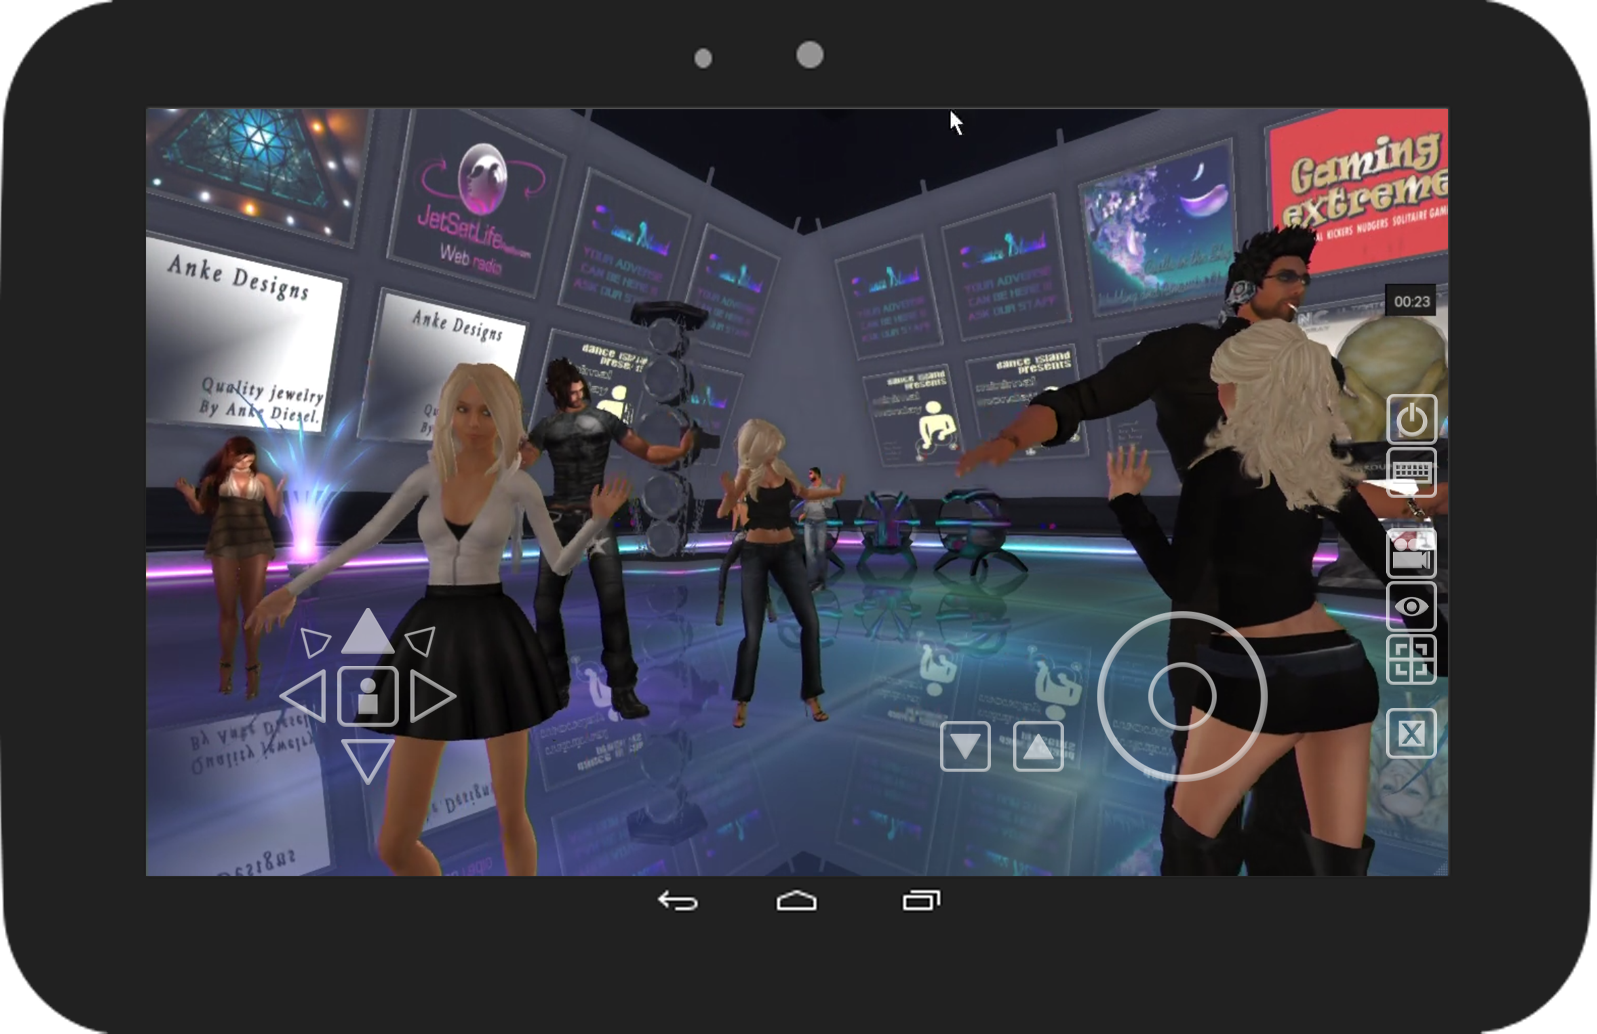 Android Dance Pary